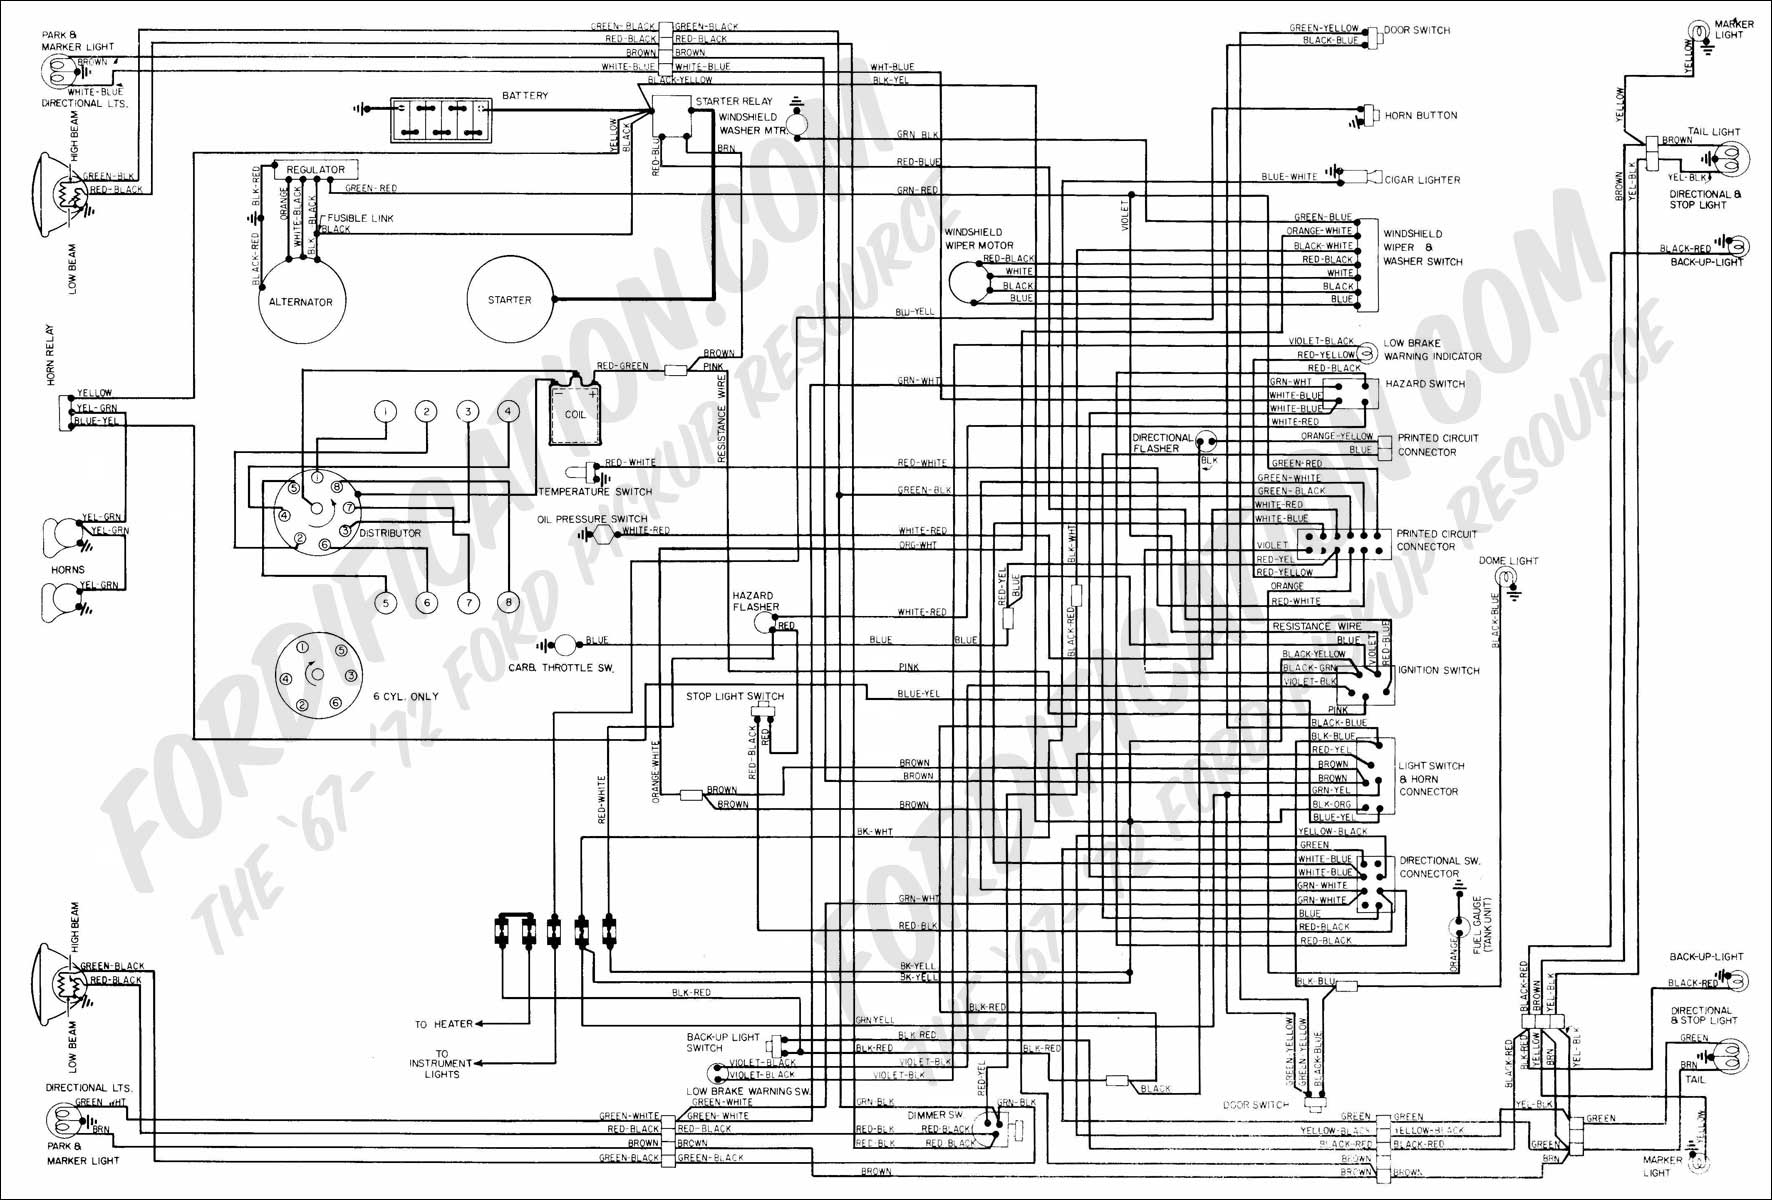 1972 F-series quick-reference diagram *